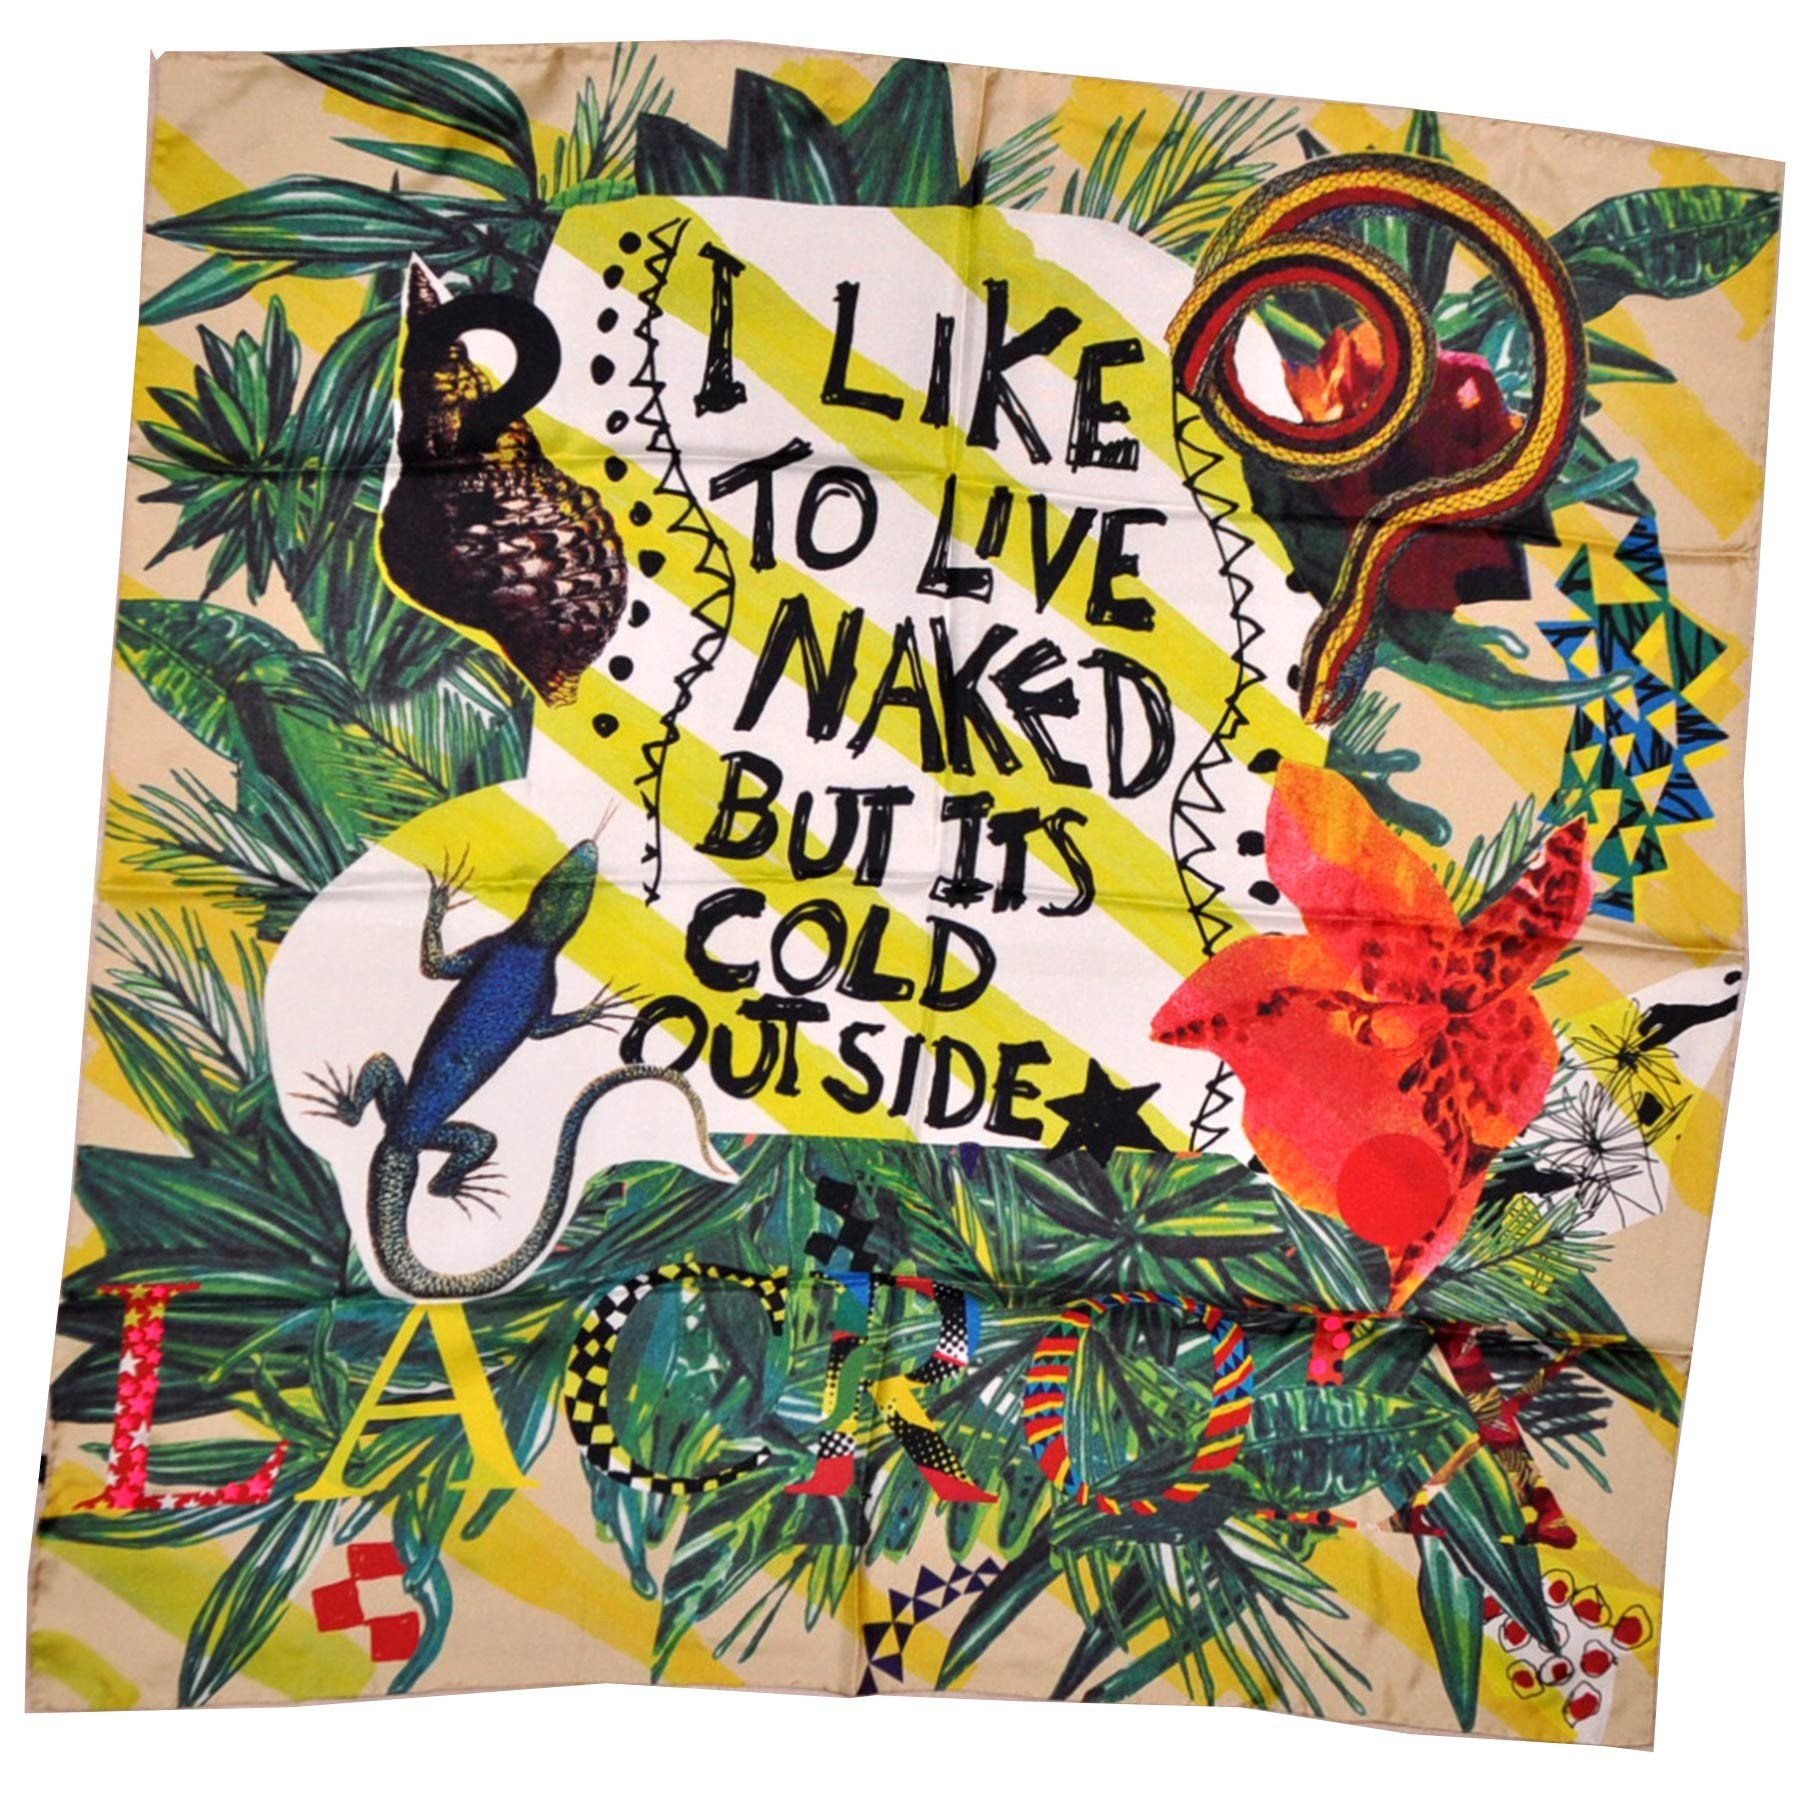 c4eae898ed27 Christian Lacroix Scarf Its Cold Outside Large Twill Silk Square Scarf